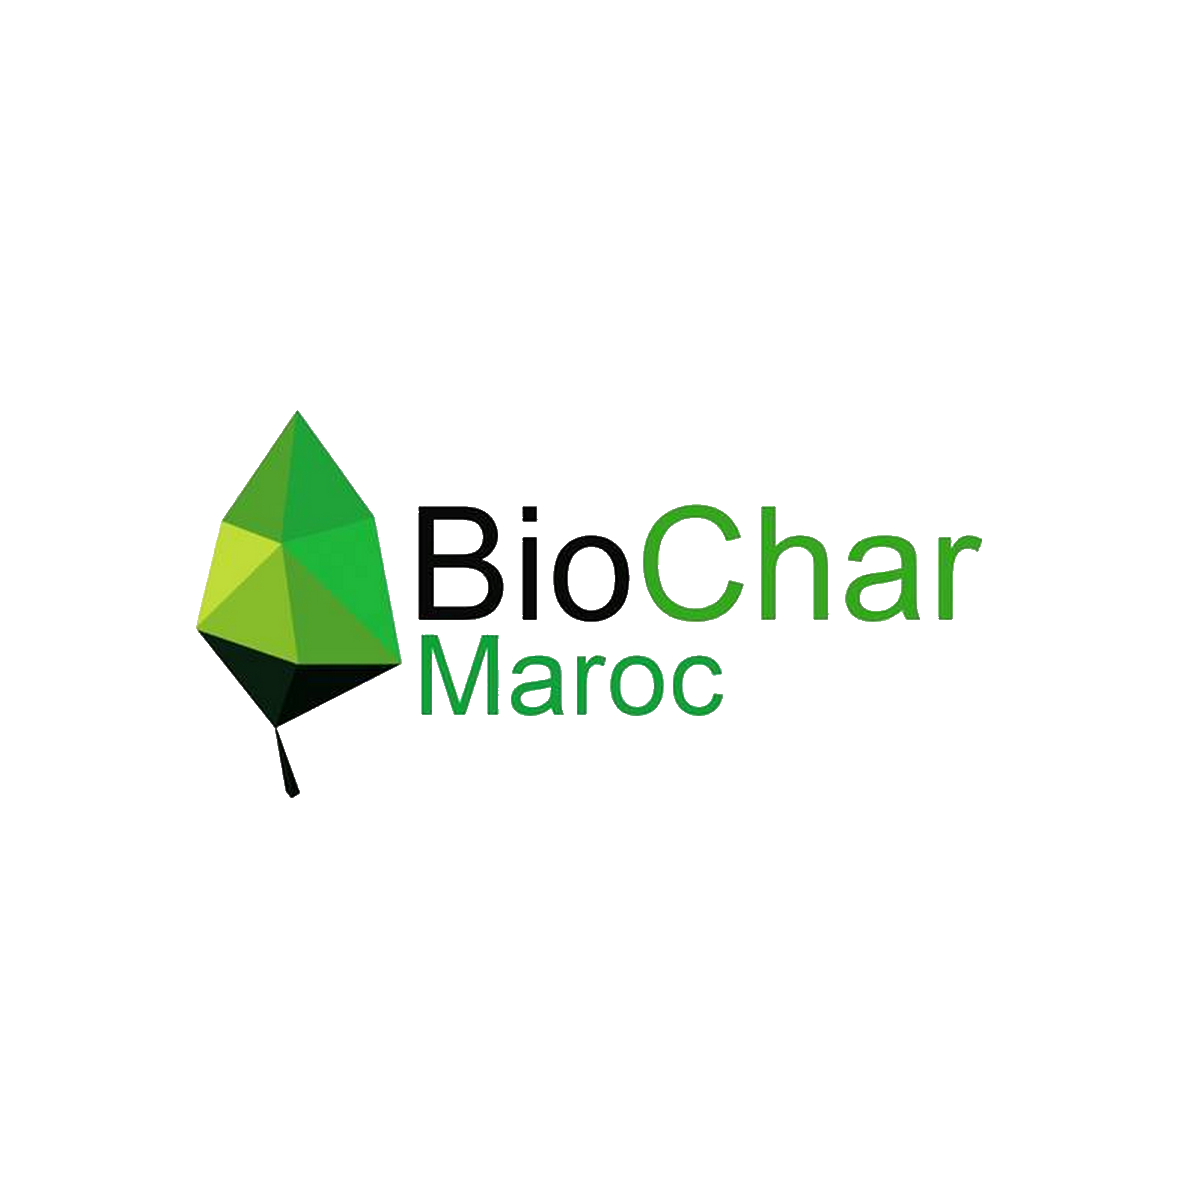 BioChar-Maroc-start-up.ma